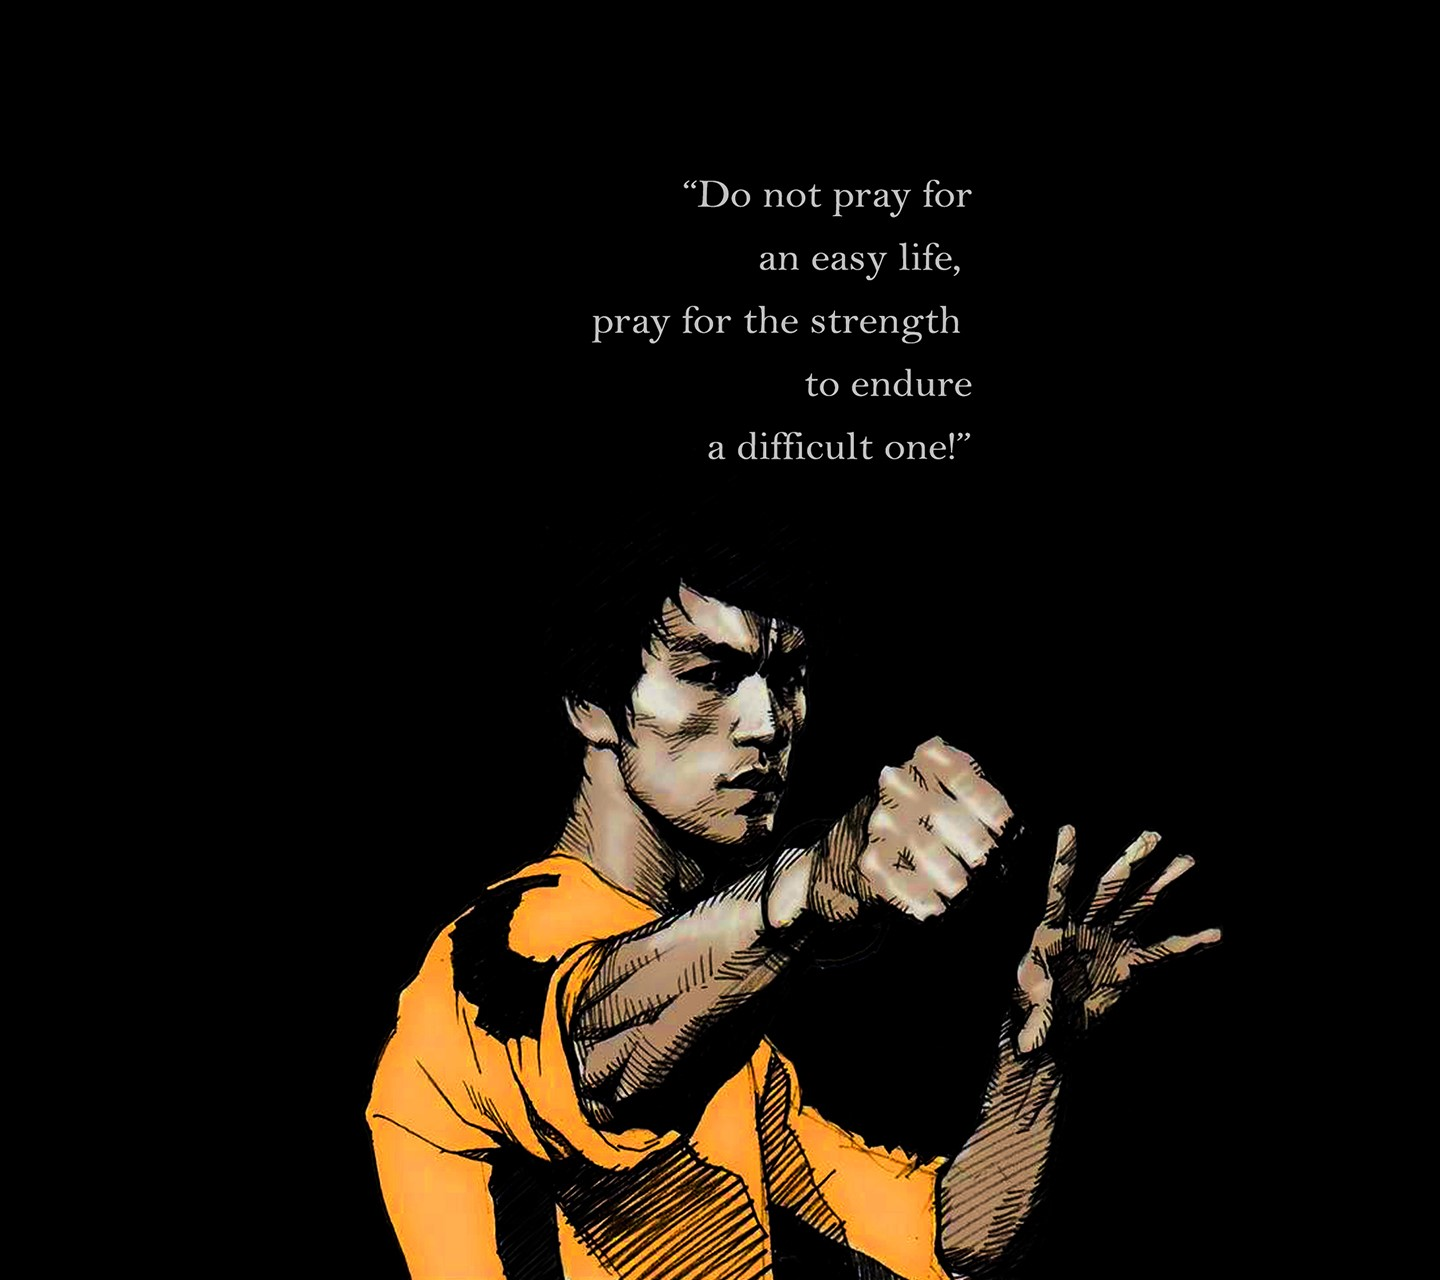 Bruce Lee Motivation wallpaper 10216700